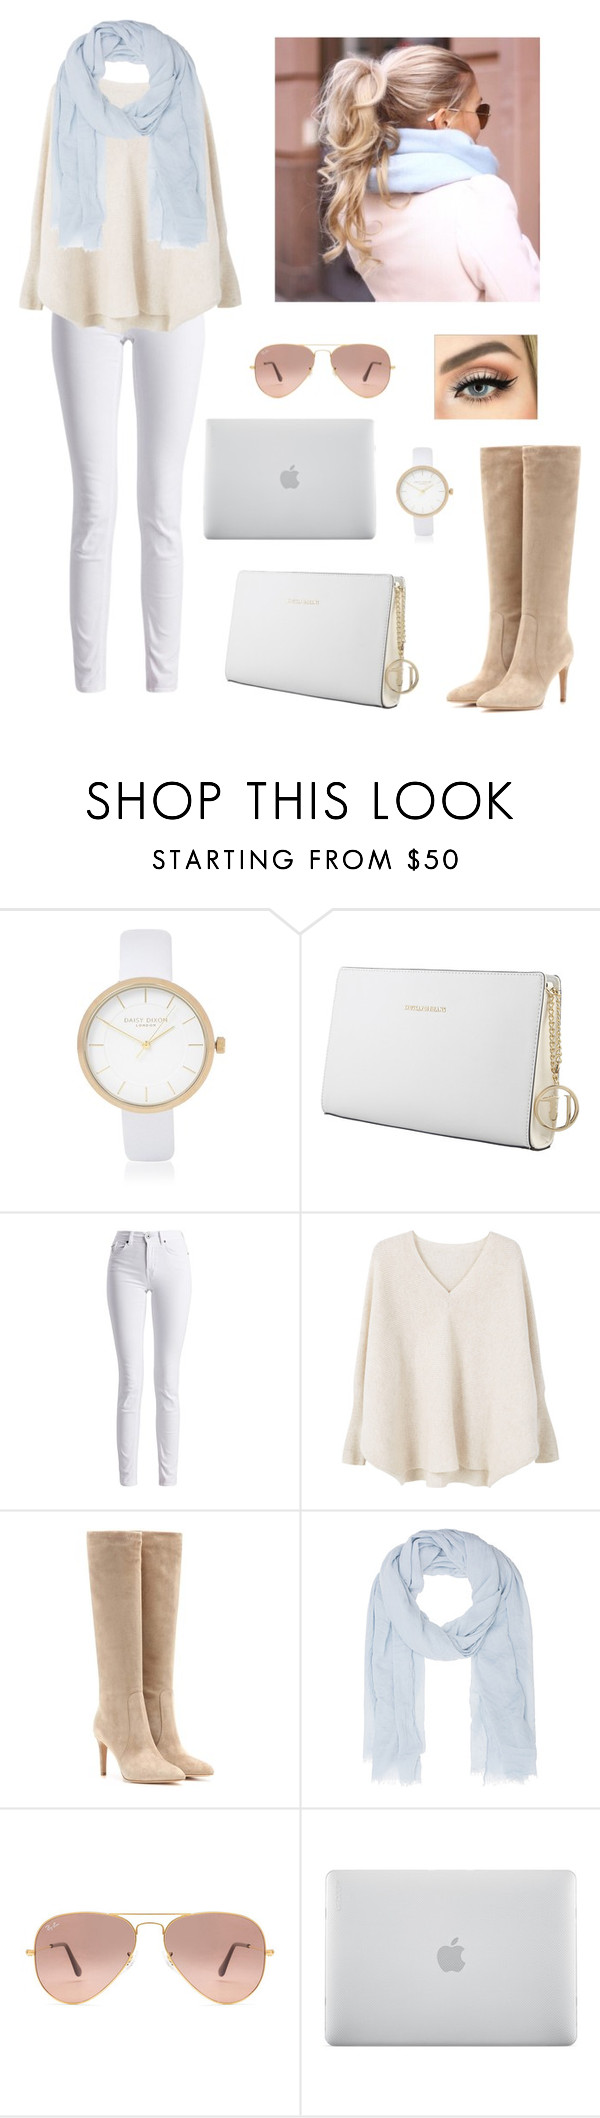 """""""Winter is coming!"""" by firebreatherr ❤ liked on Polyvore featuring River Island, Trussardi, Barbour International, MANGO, Gianvito Rossi, Juvia, Ray-Ban and Incase"""